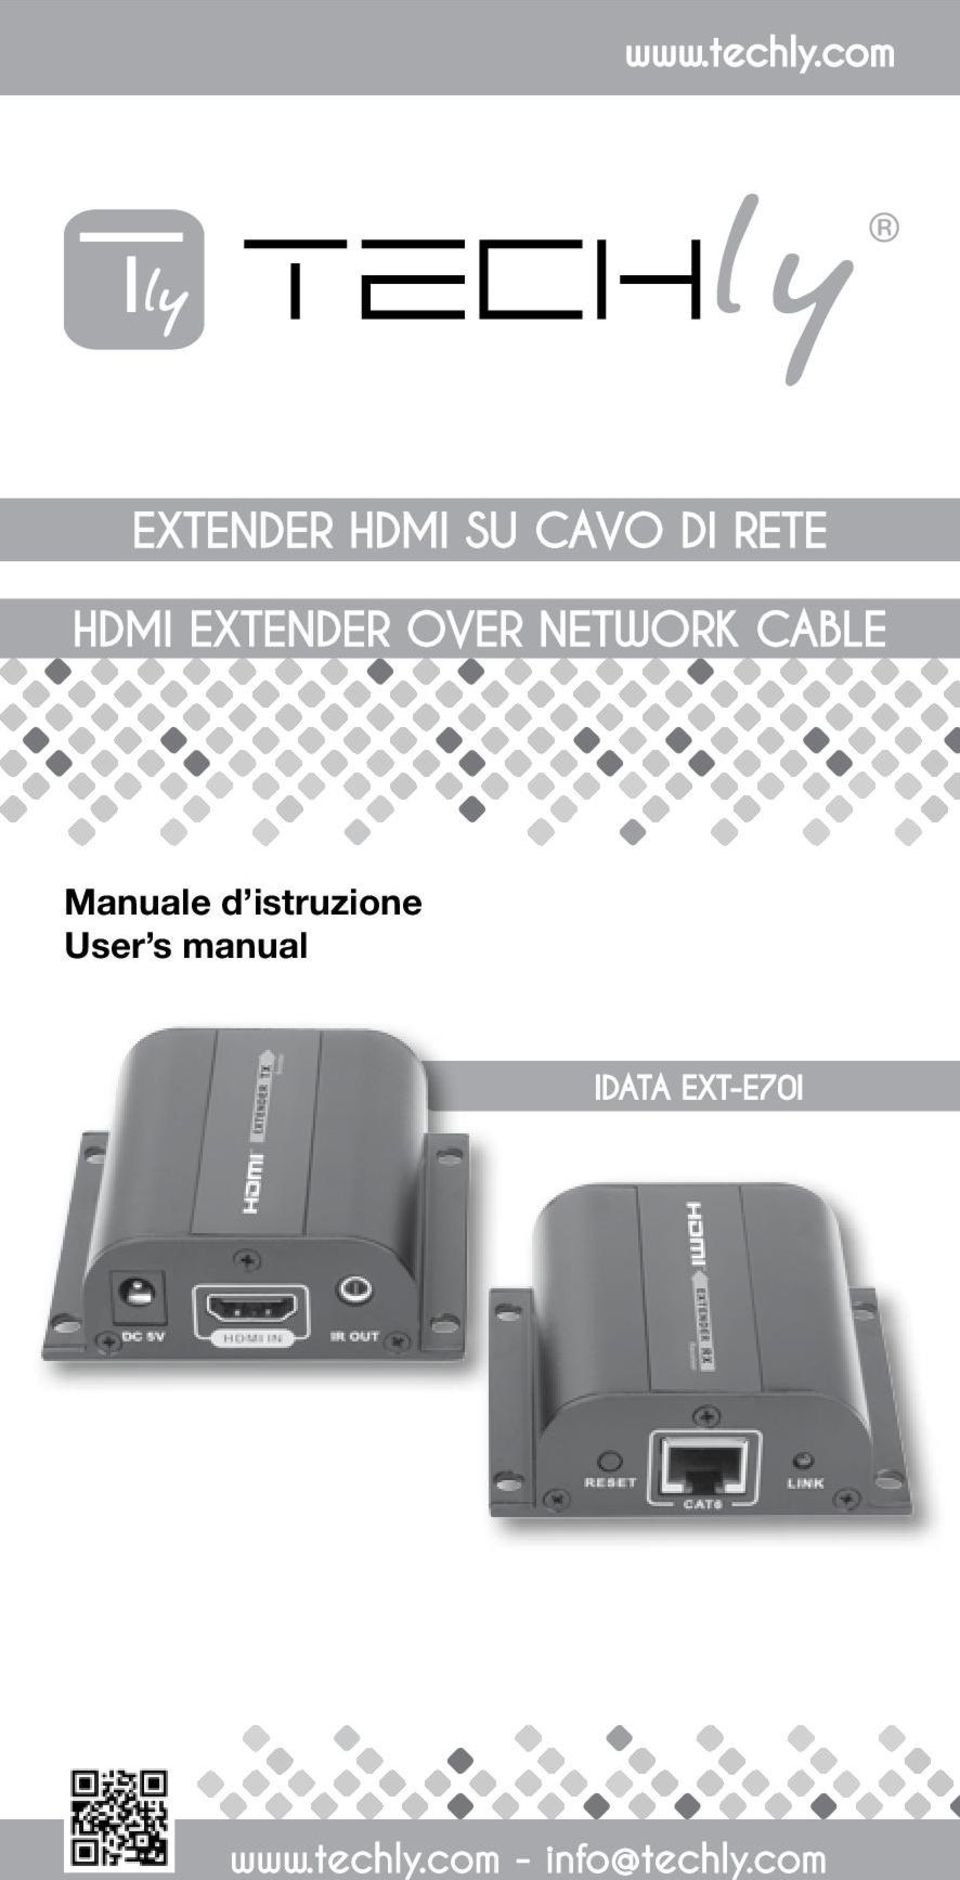 EXTENDER OVER NETWORK CABLE Manuale d